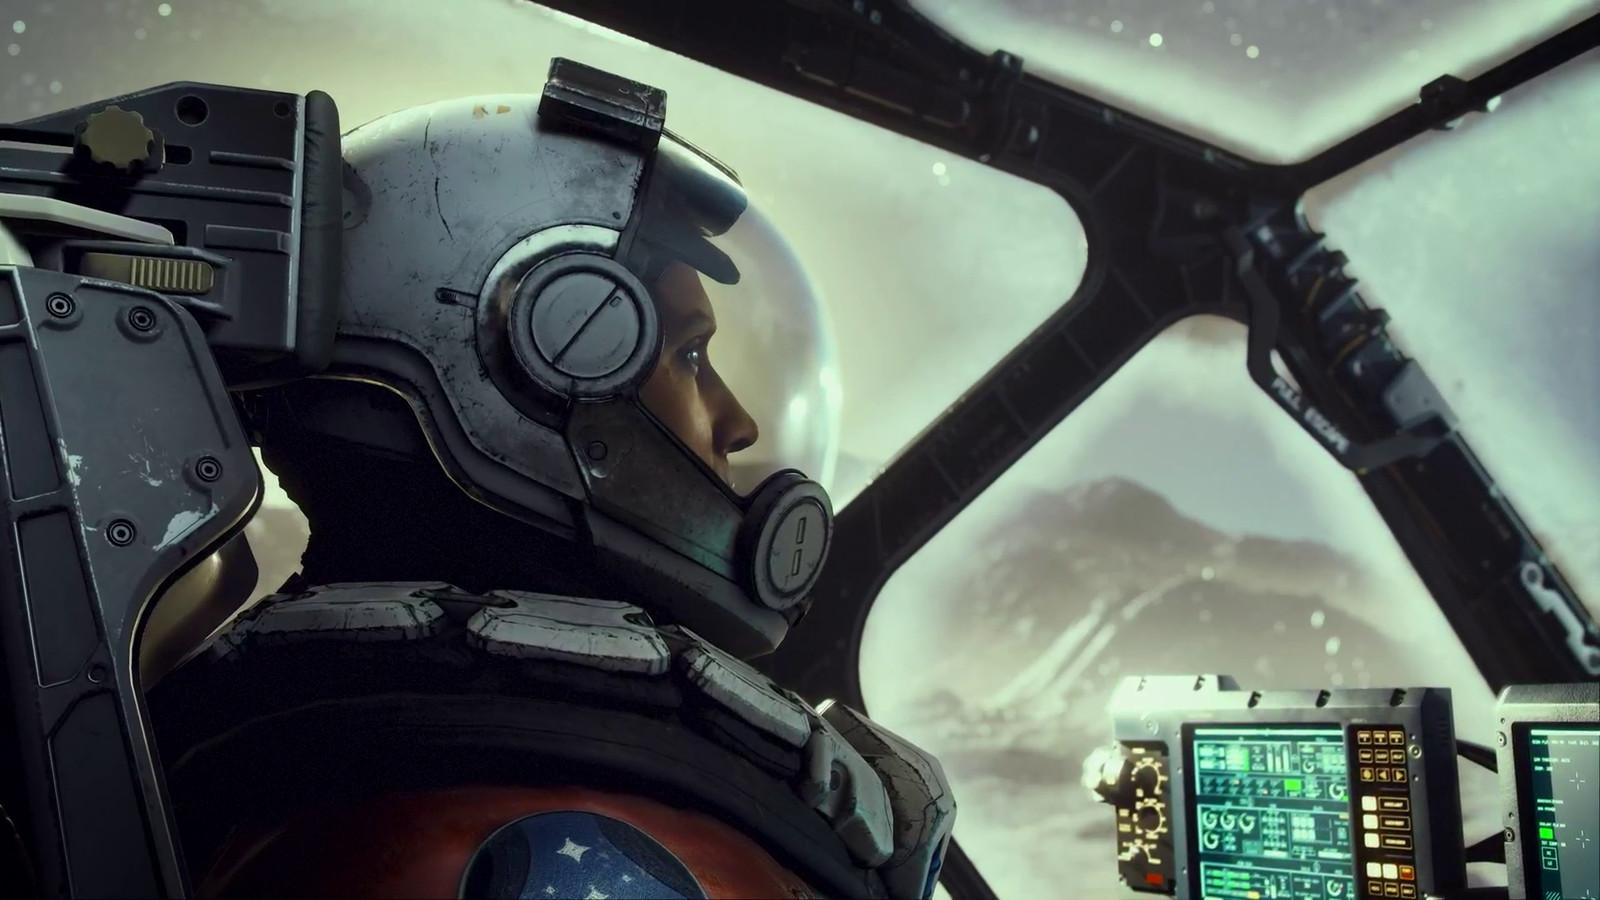 An astronaut from the game Starfield.